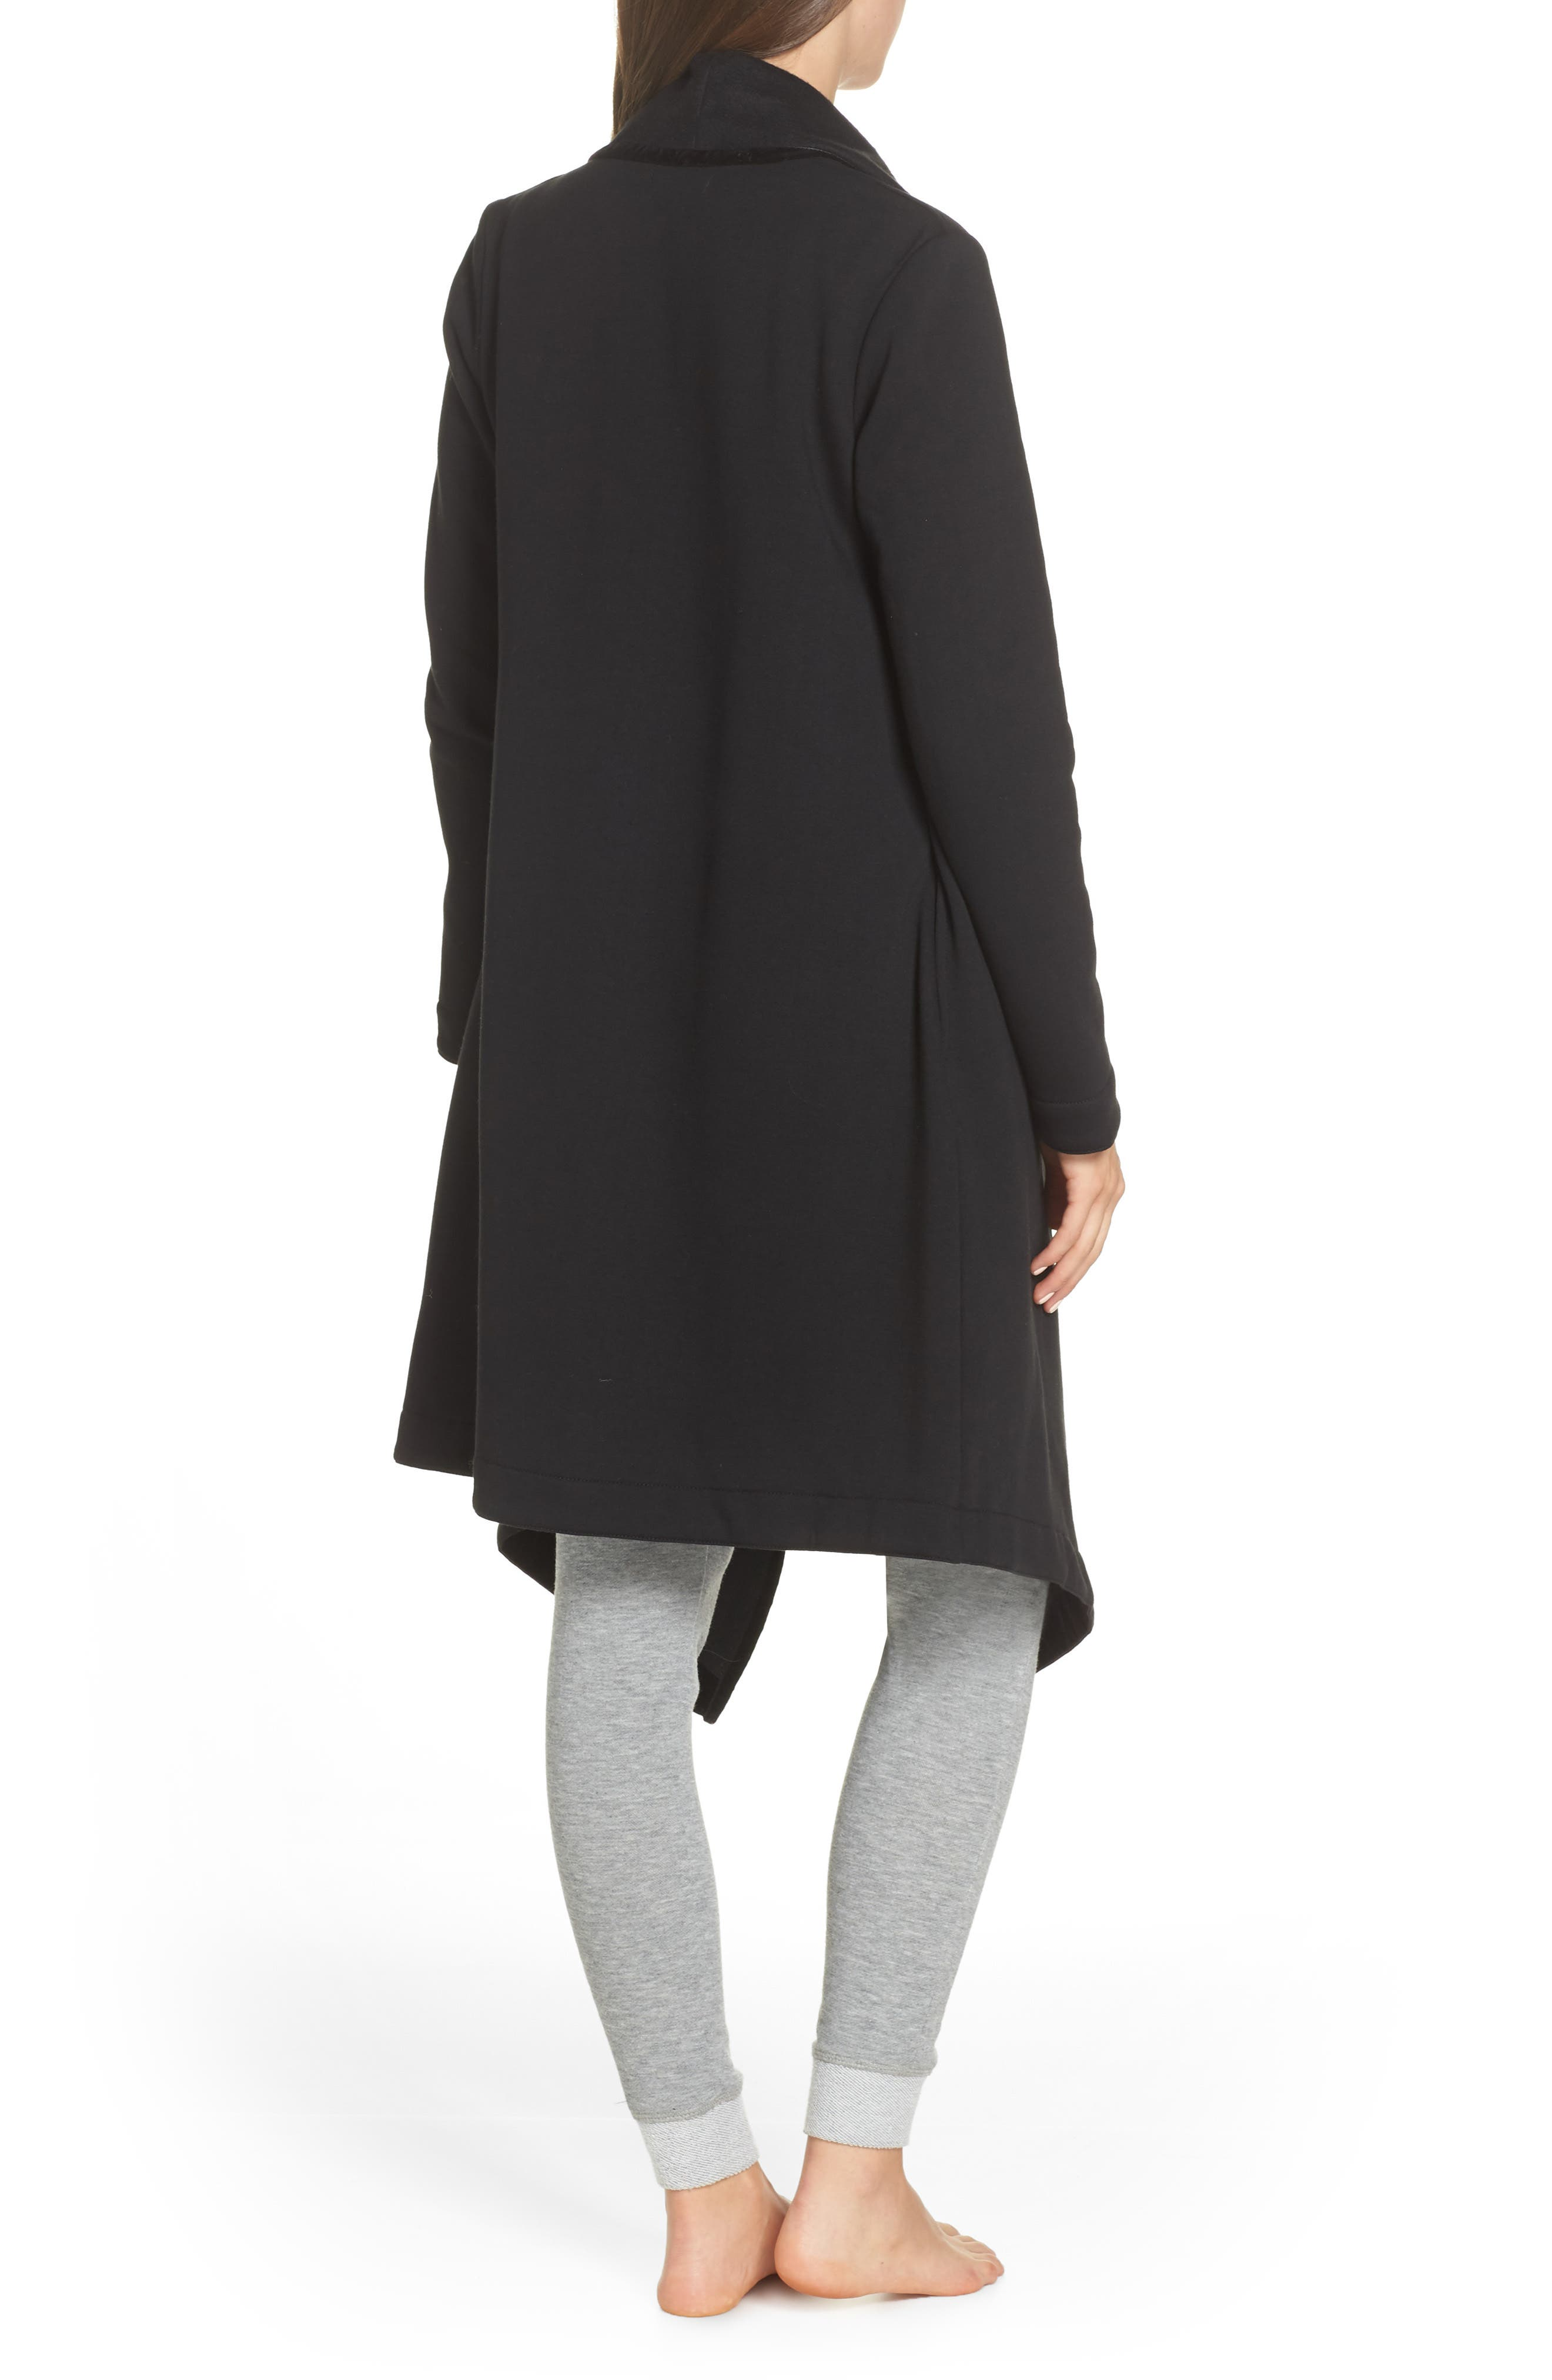 Janni Fleece Cardigan,                             Alternate thumbnail 2, color,                             BLACK